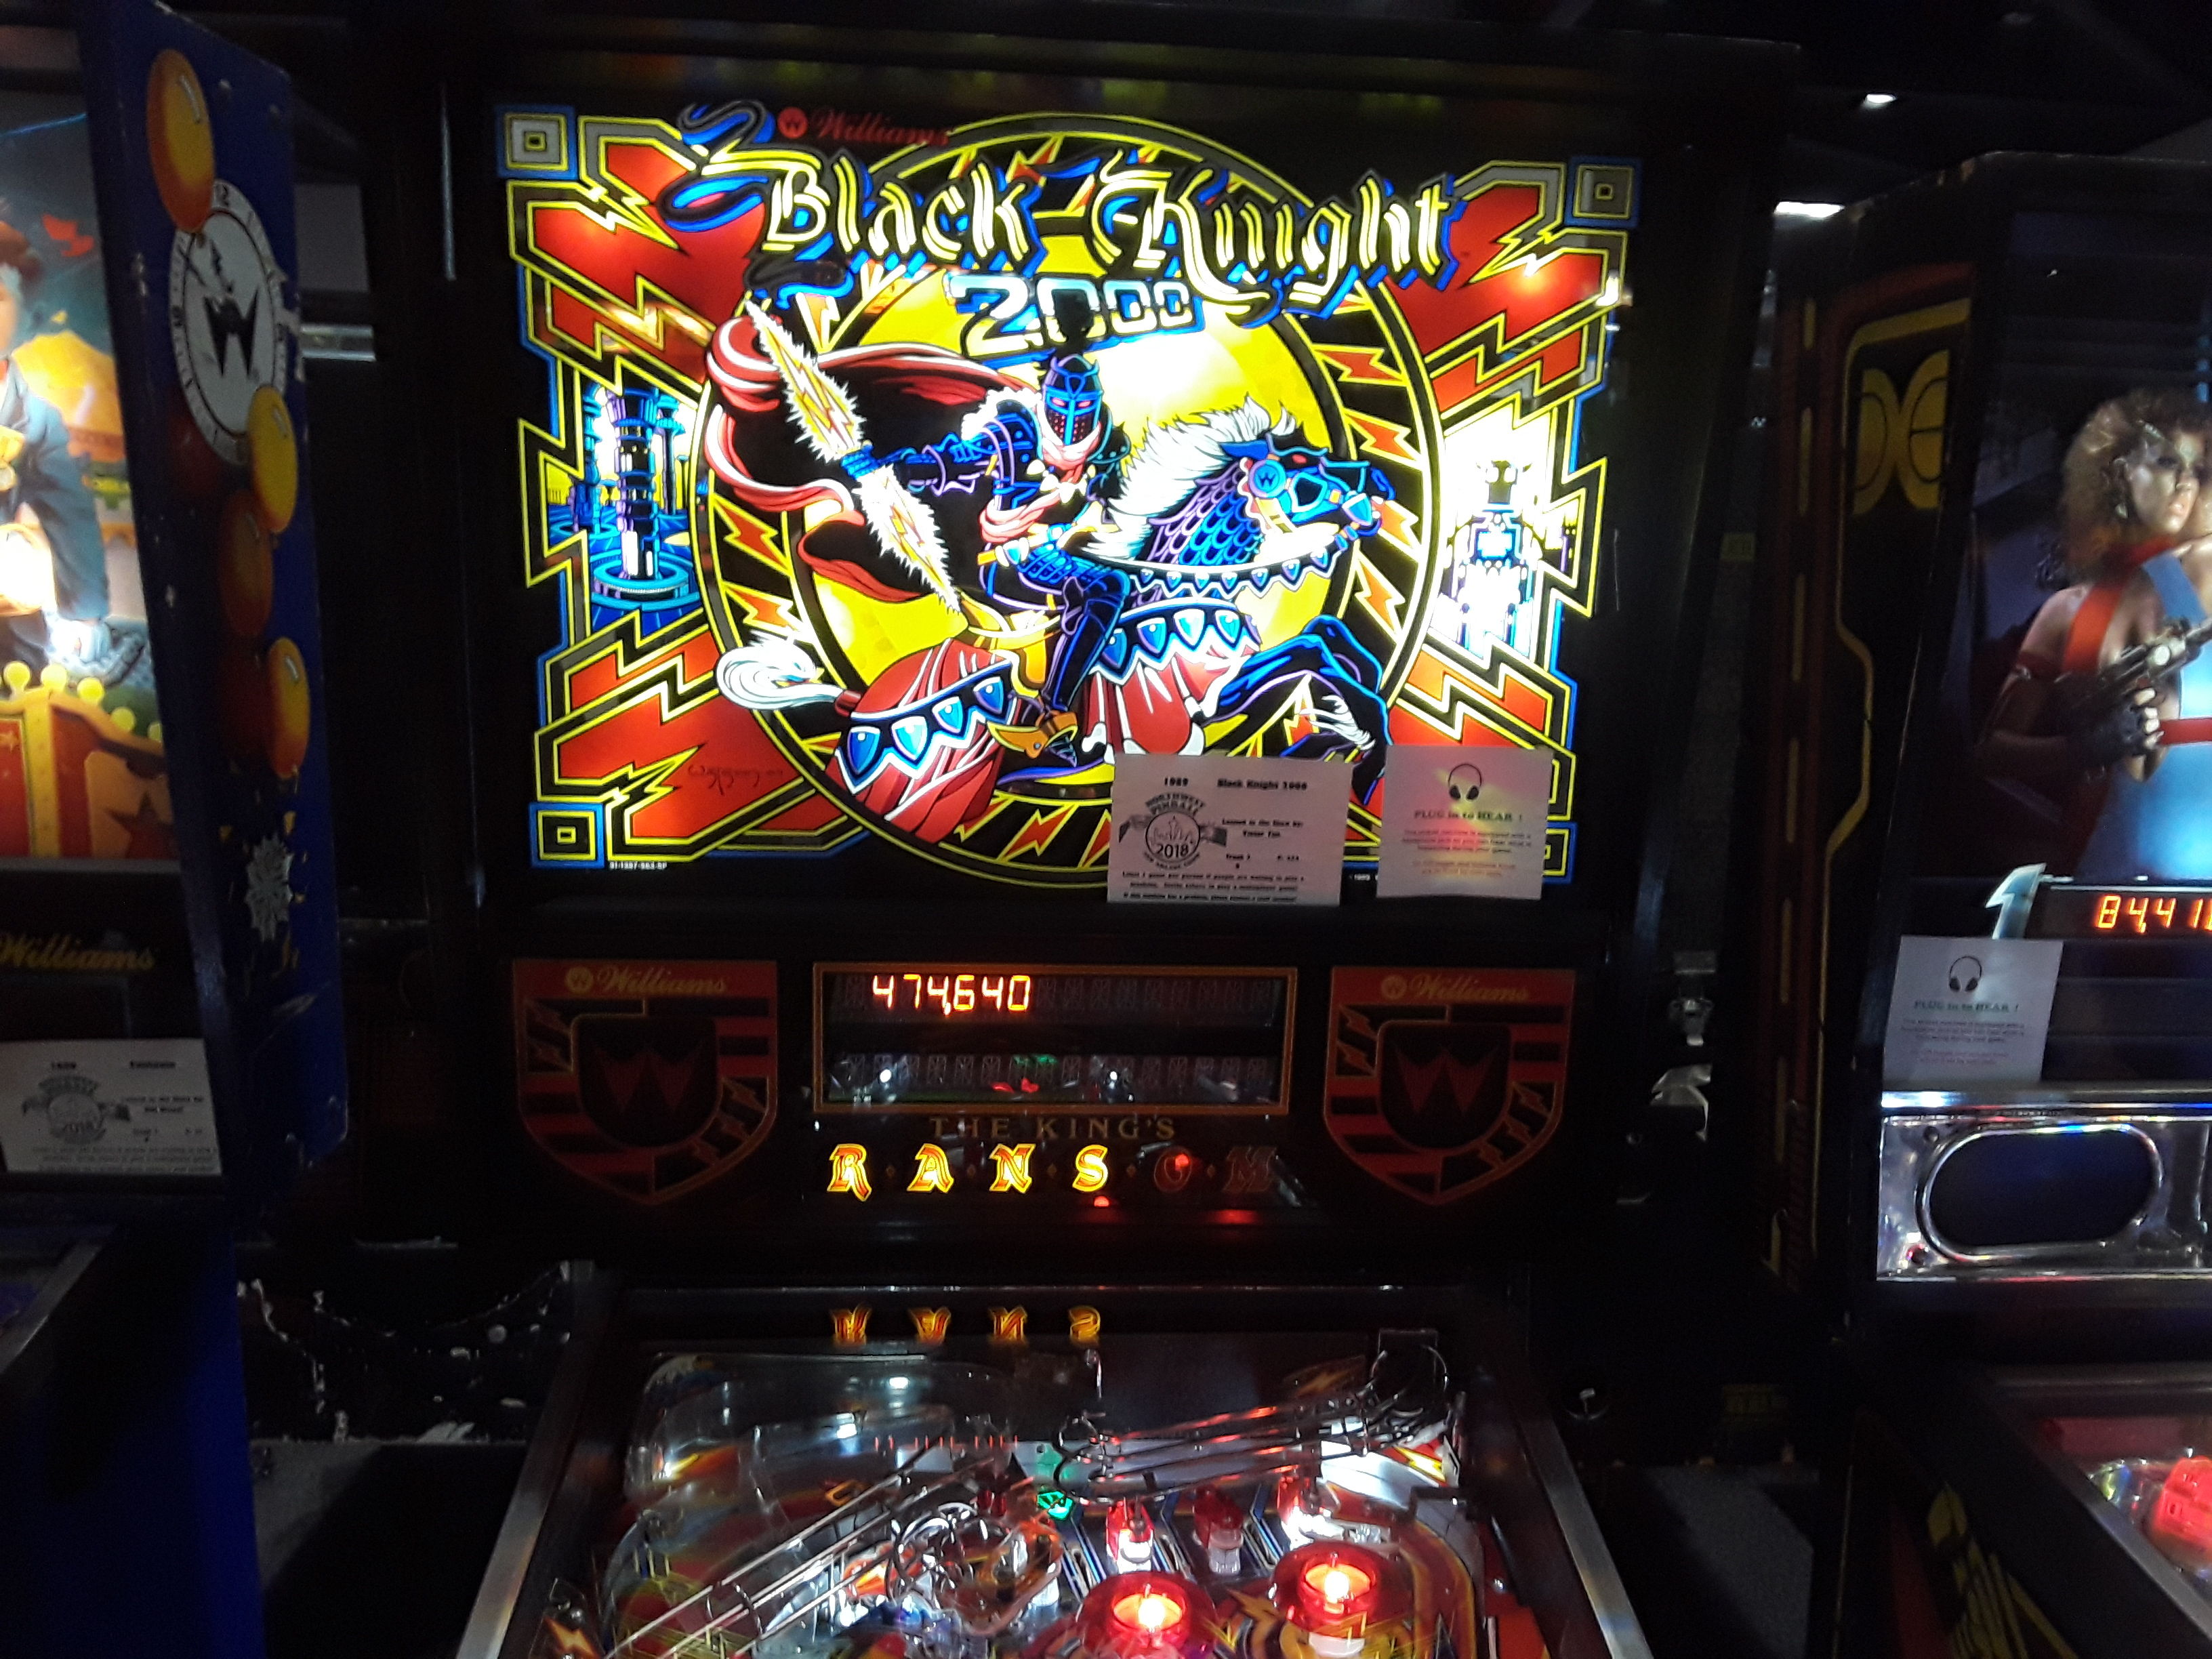 Black Knight 2000 474,640 points